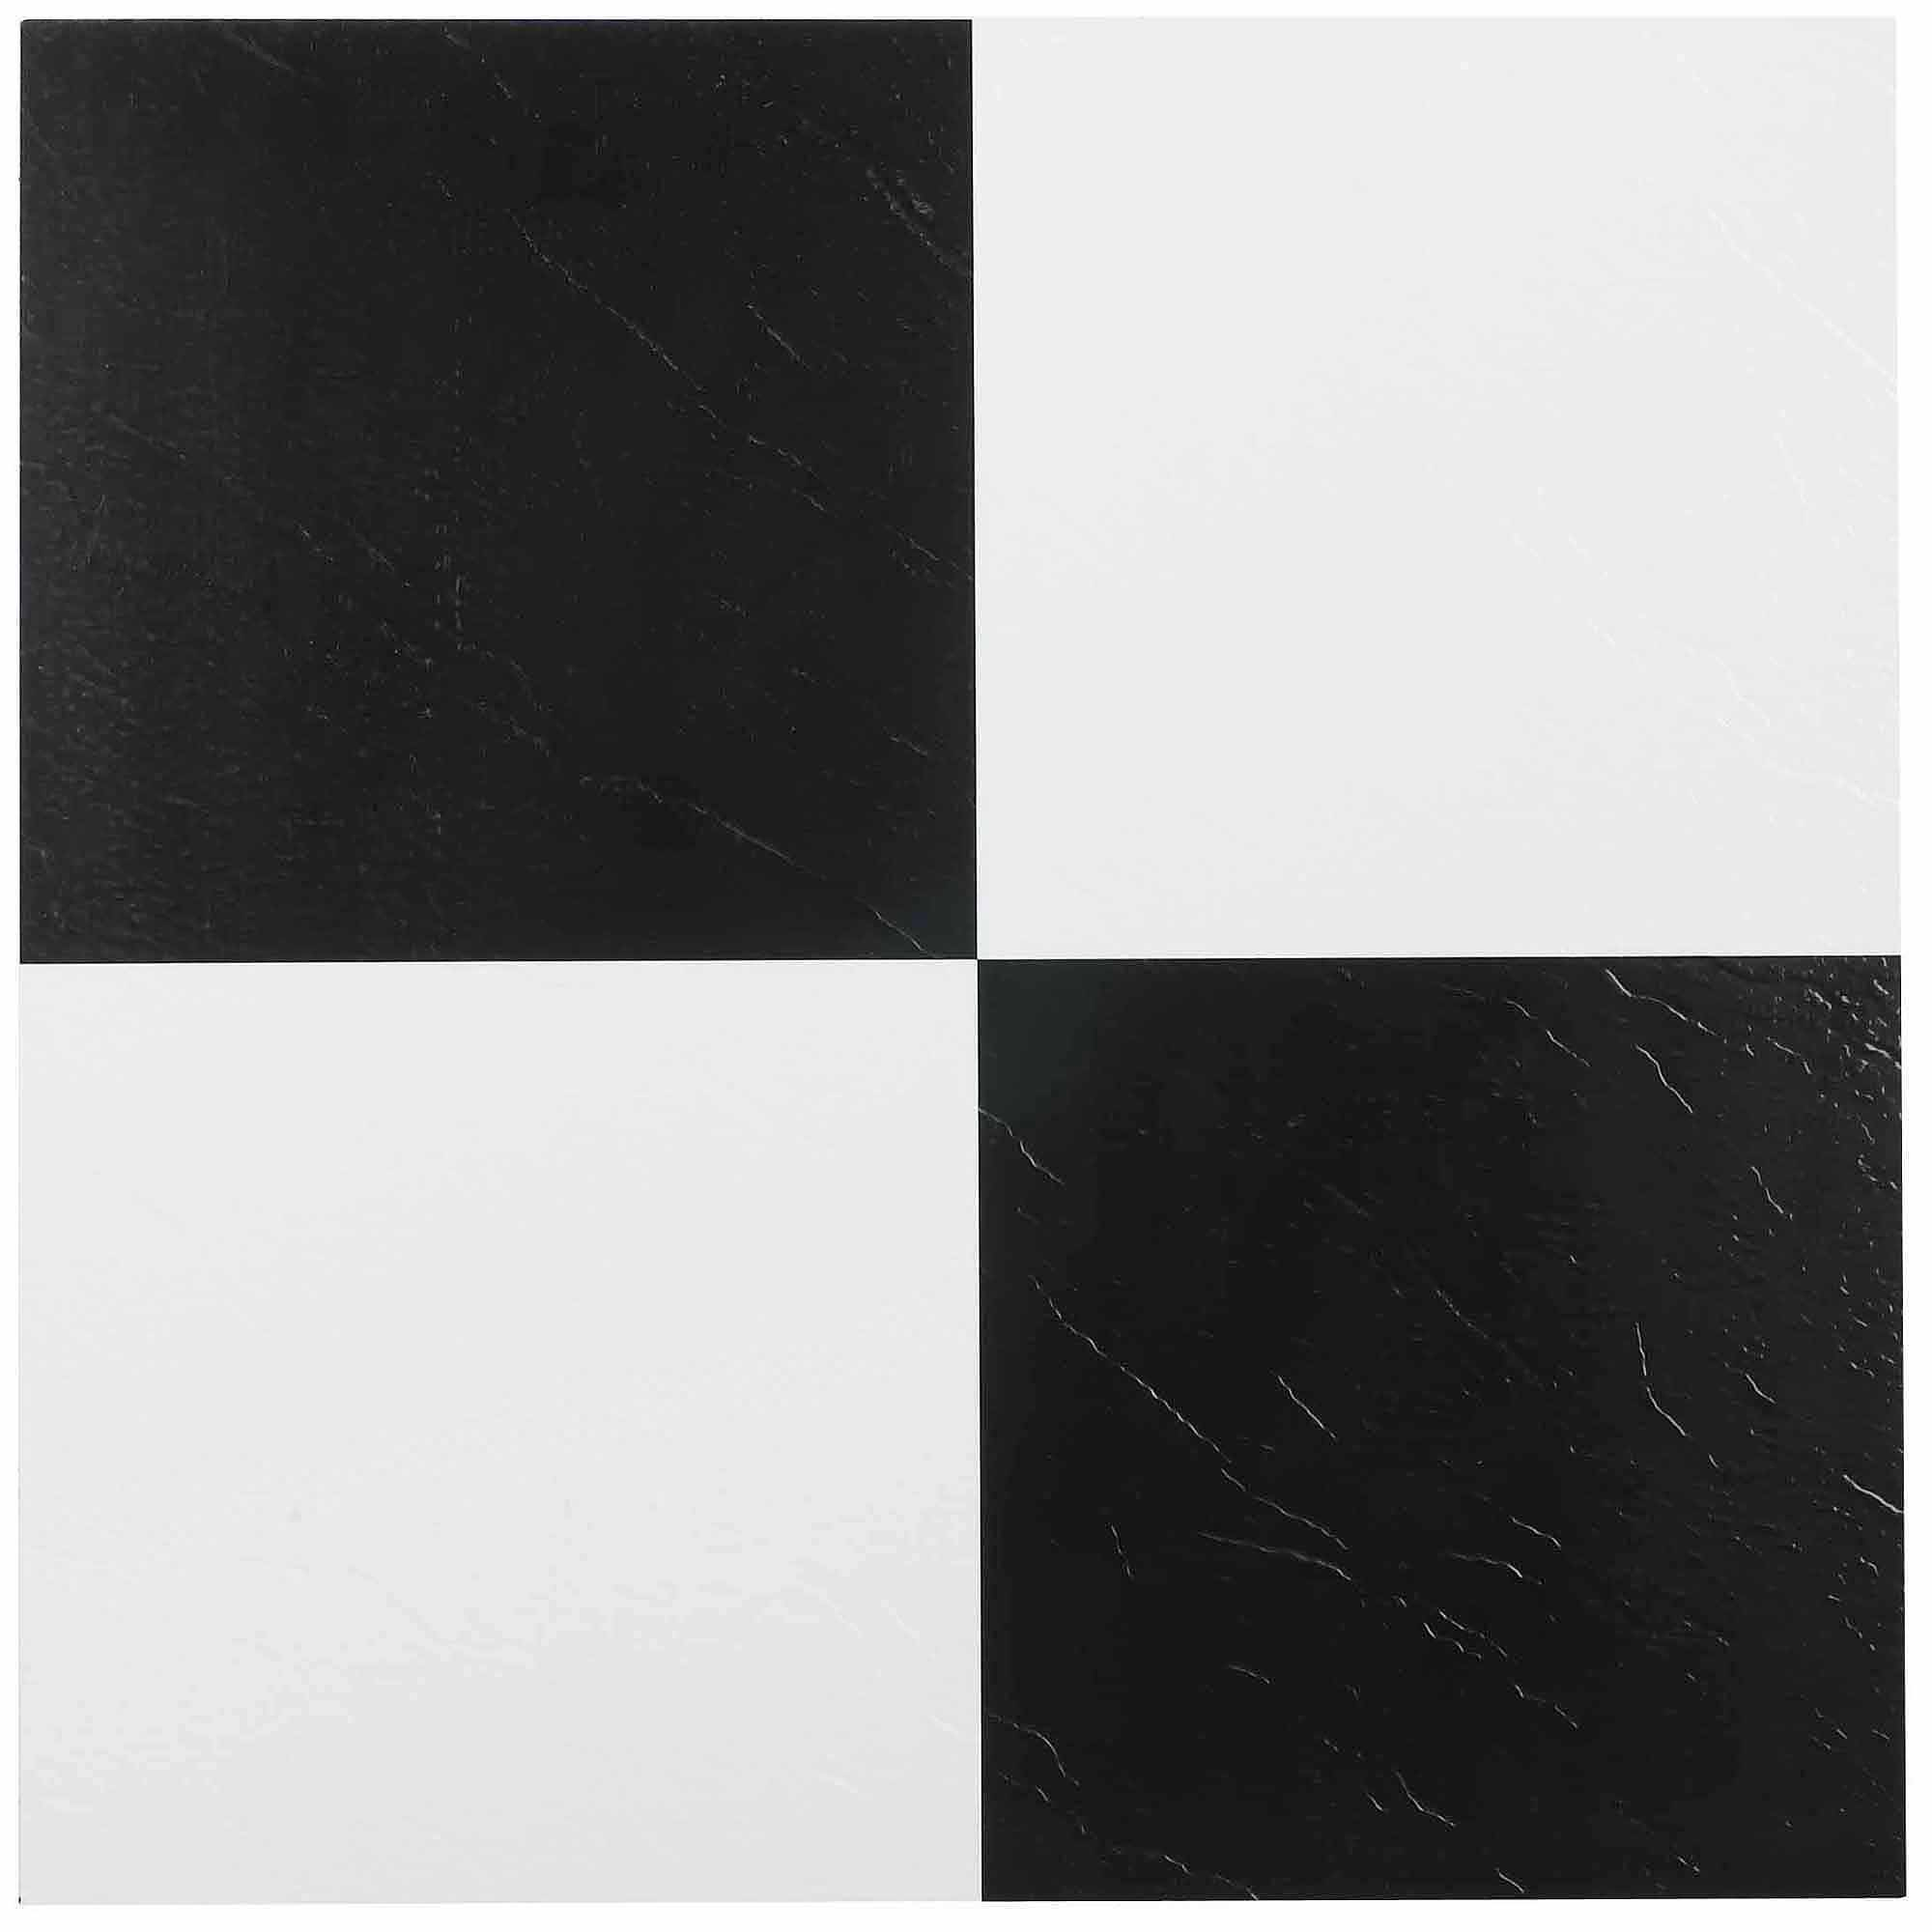 Self adhesive floor tiles nexus black white 12x12 self adhesive vinyl floor tile 20 tiles20 sq dailygadgetfo Images